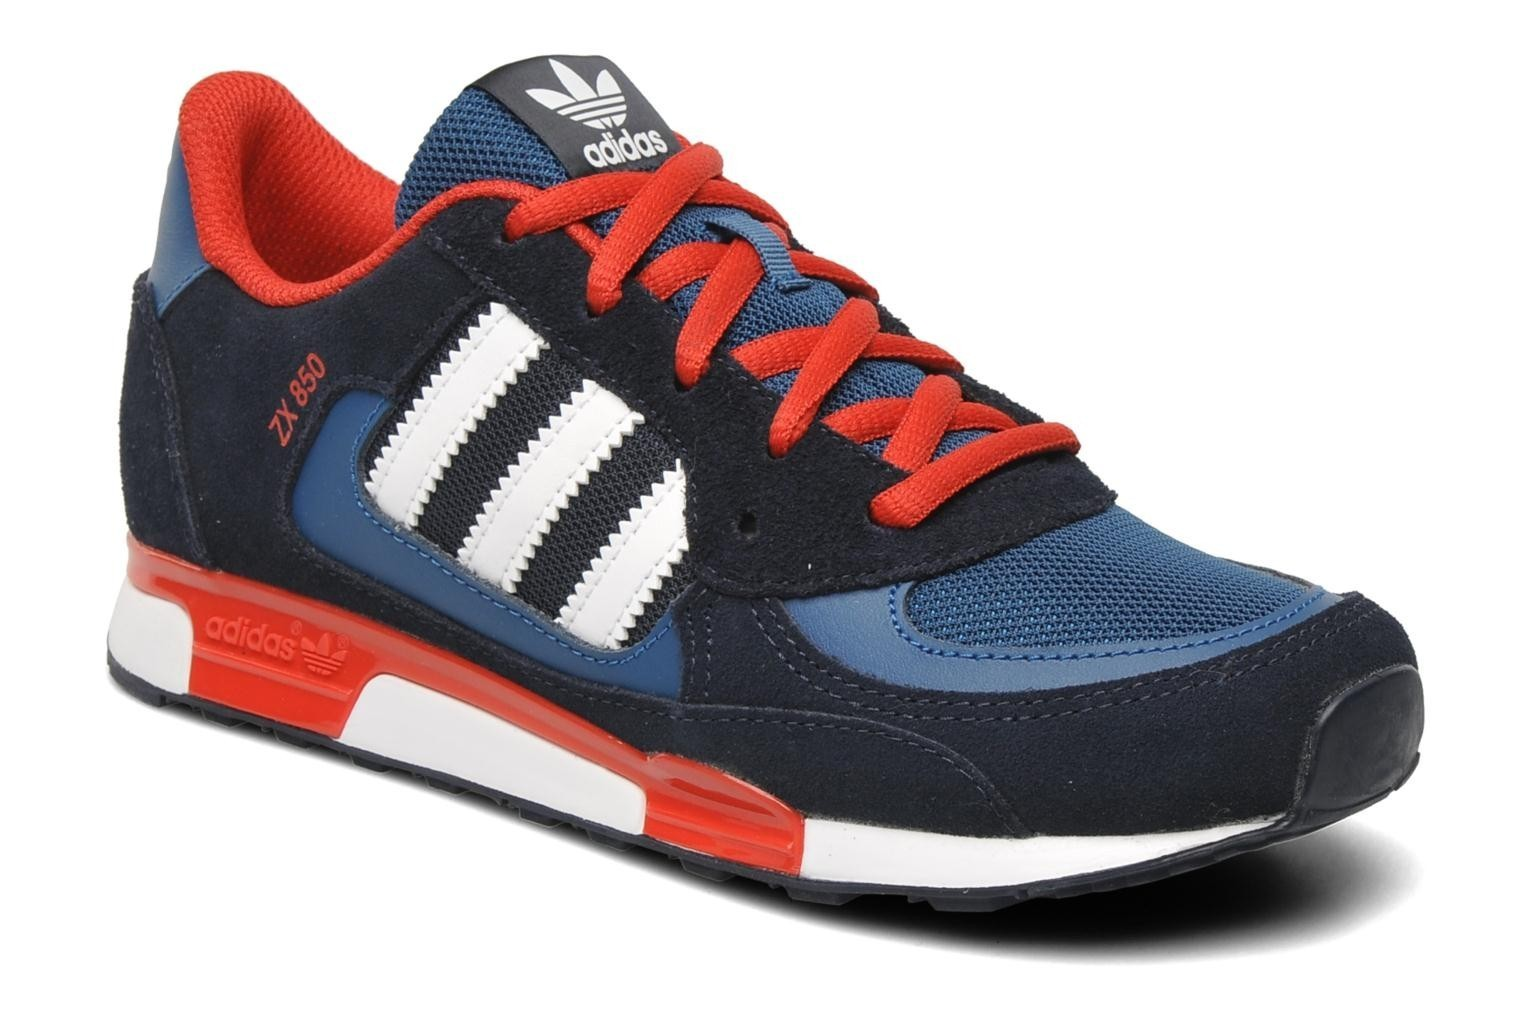 Adidas Zx 850 homme pas cher